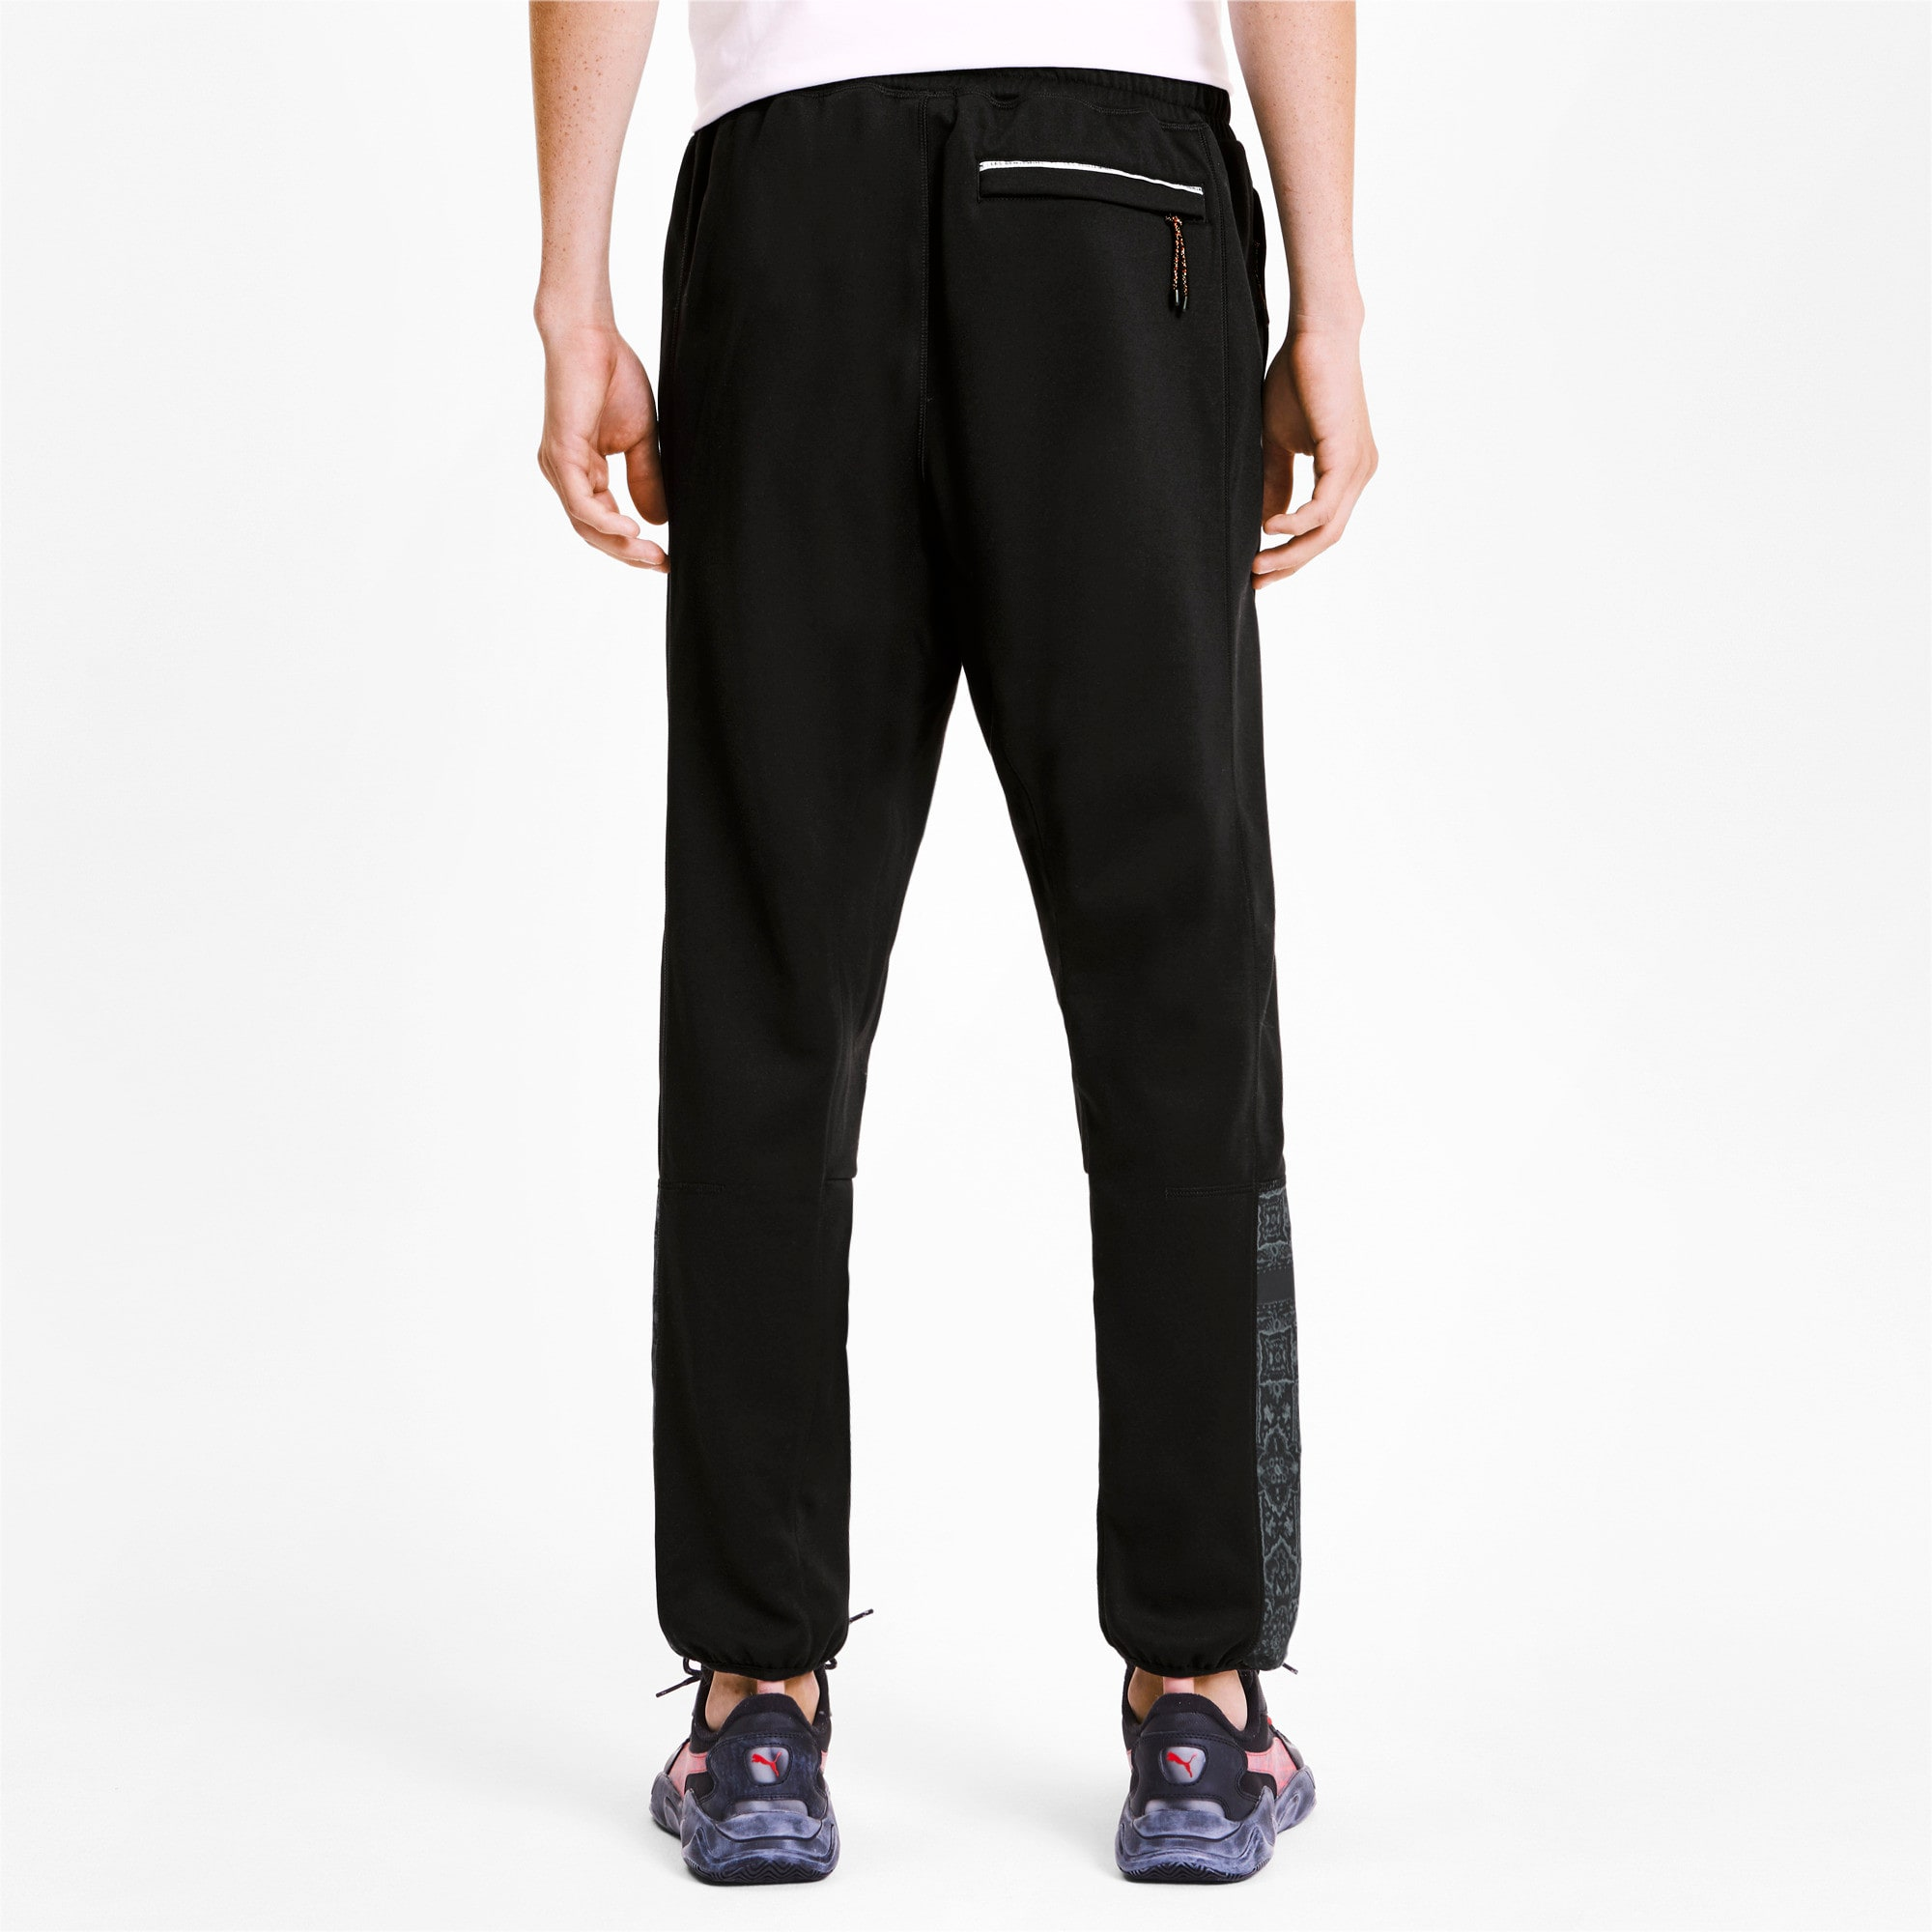 Thumbnail 3 of PUMA x LES BENJAMINS Men's Track Pants, Puma Black, medium